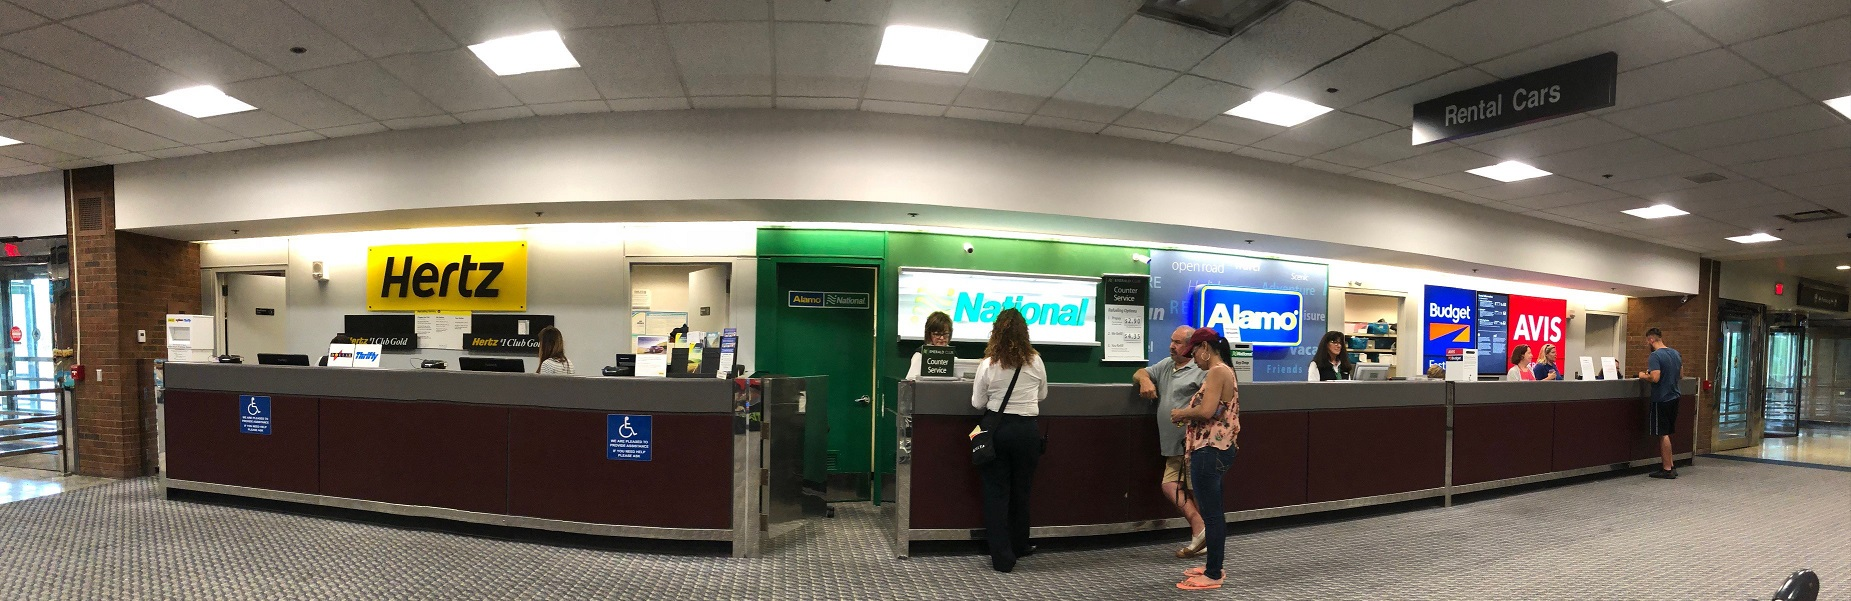 Car Rental Counter